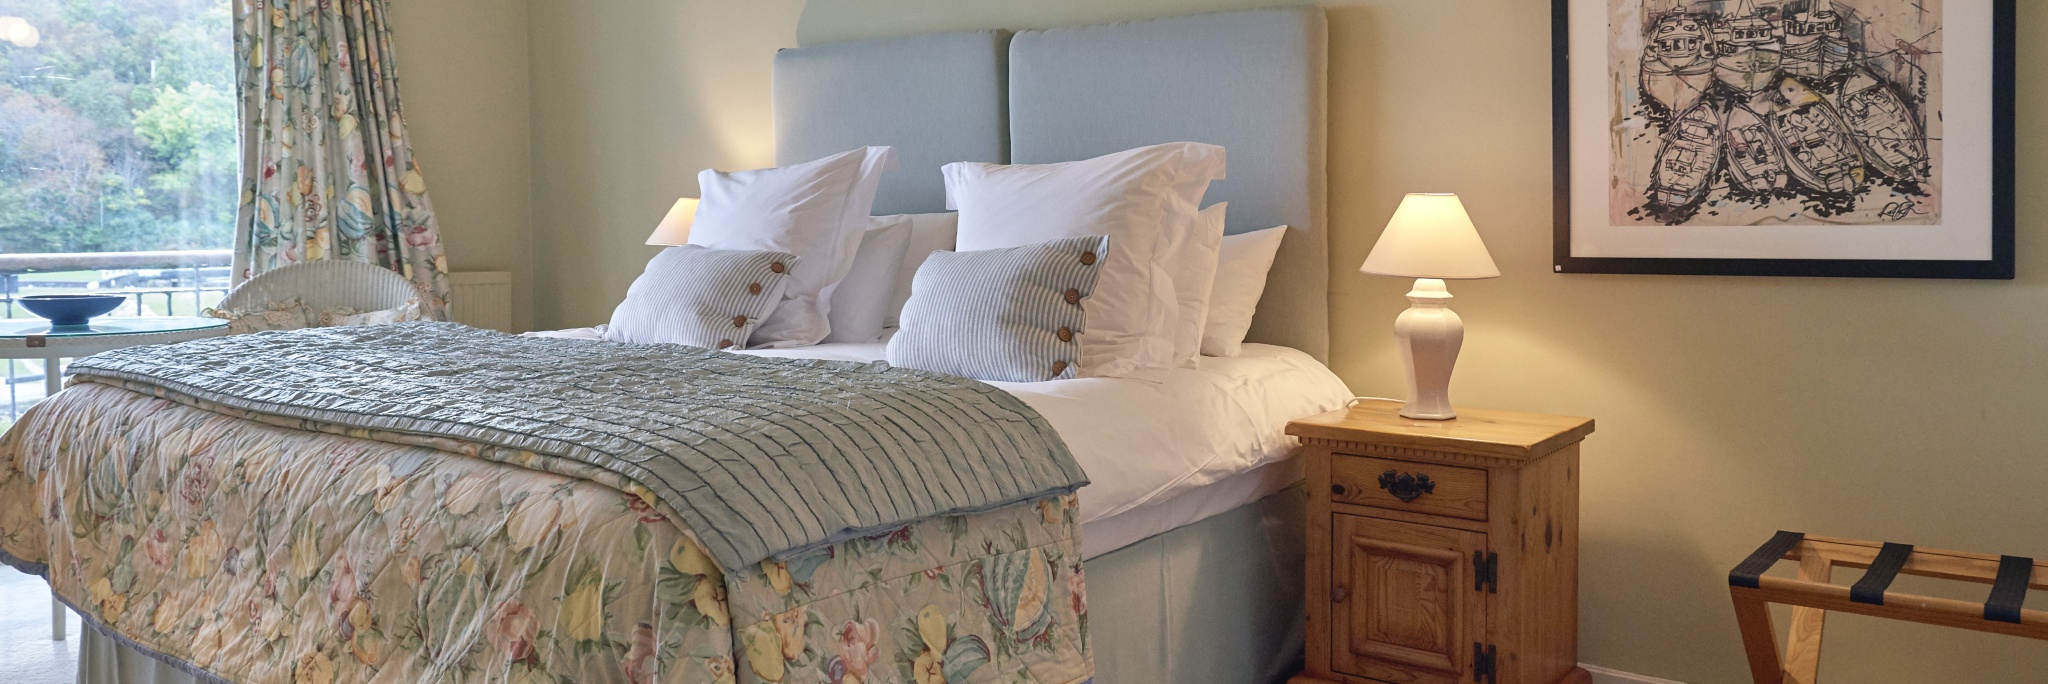 All our rooms have been individually designed